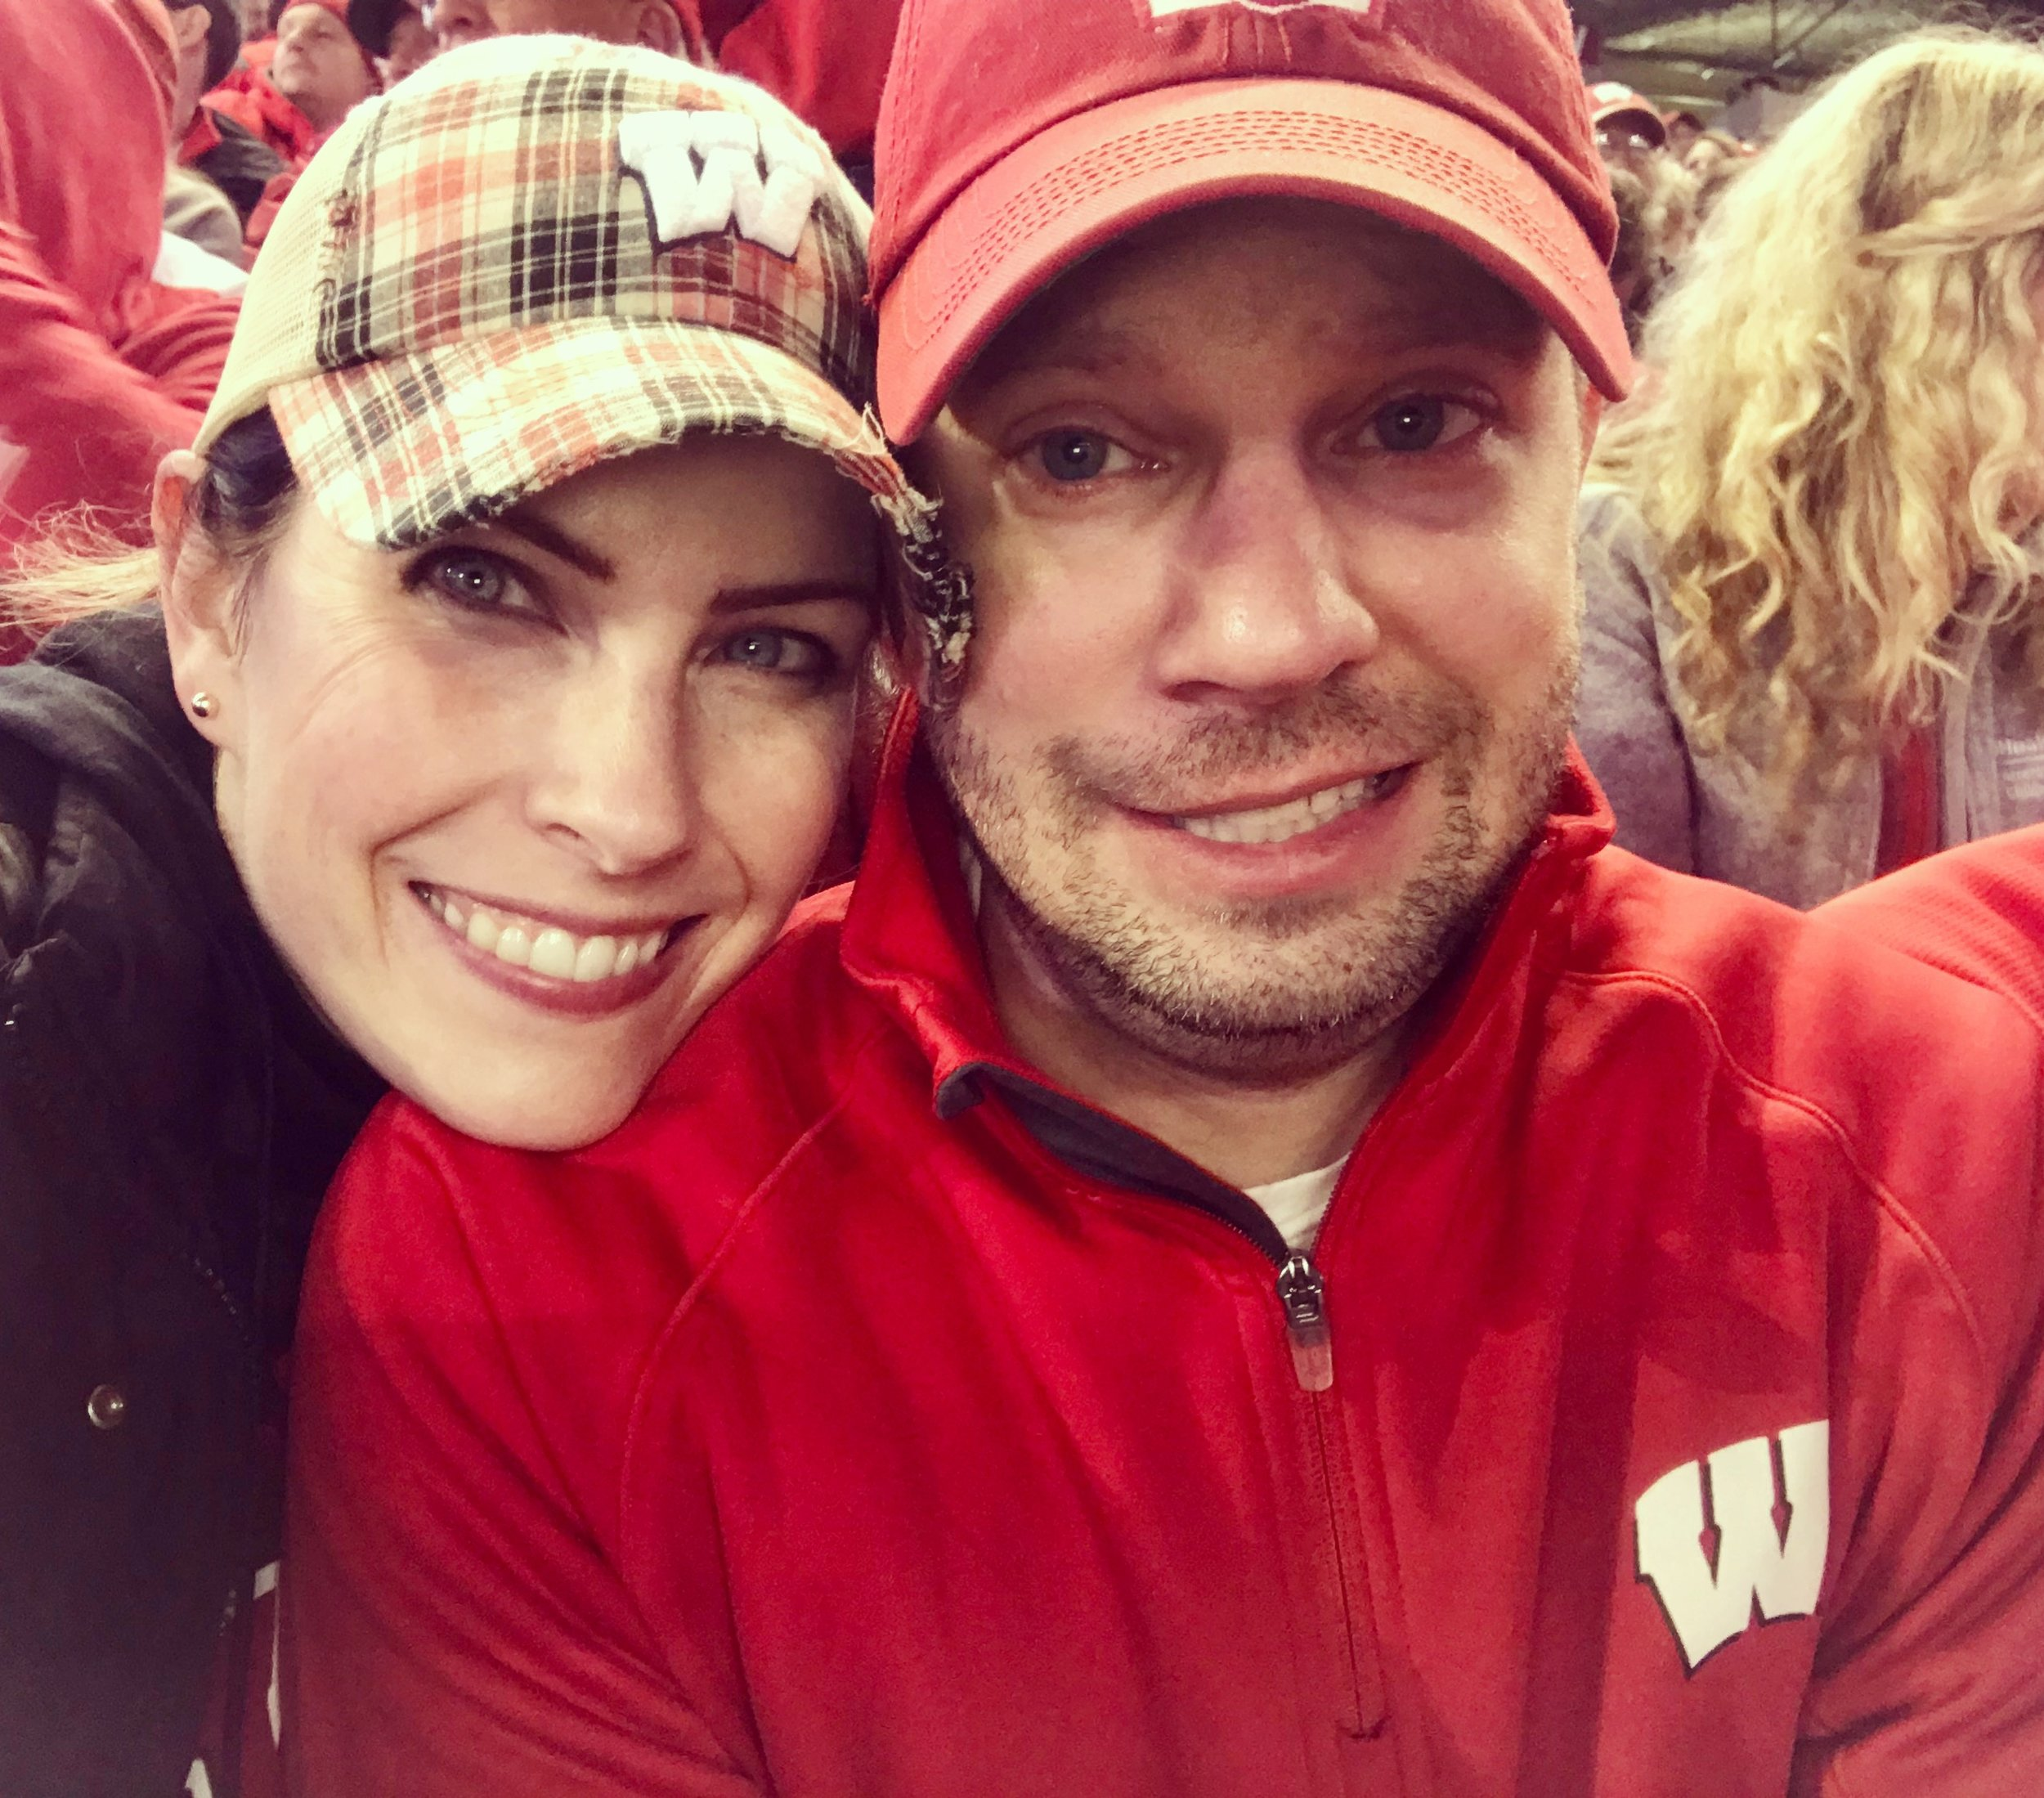 paul loves badger games and laura does too (especially the CONCESSIONS!)